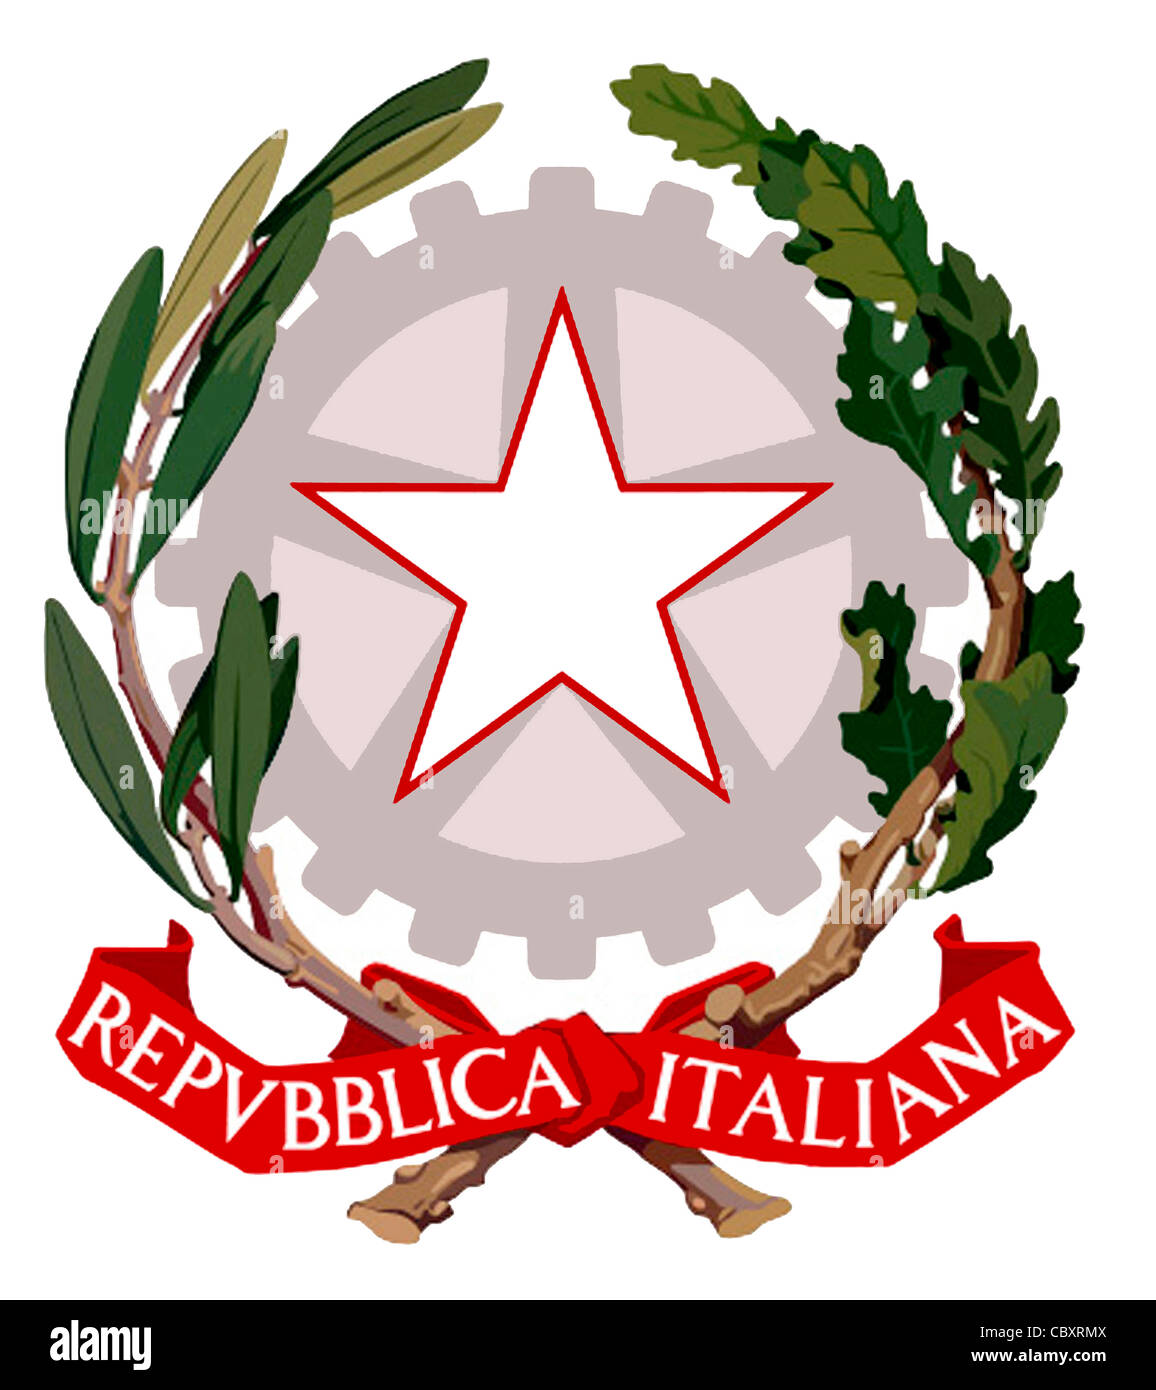 Coat of arms of the Republic of Italy. - Stock Image